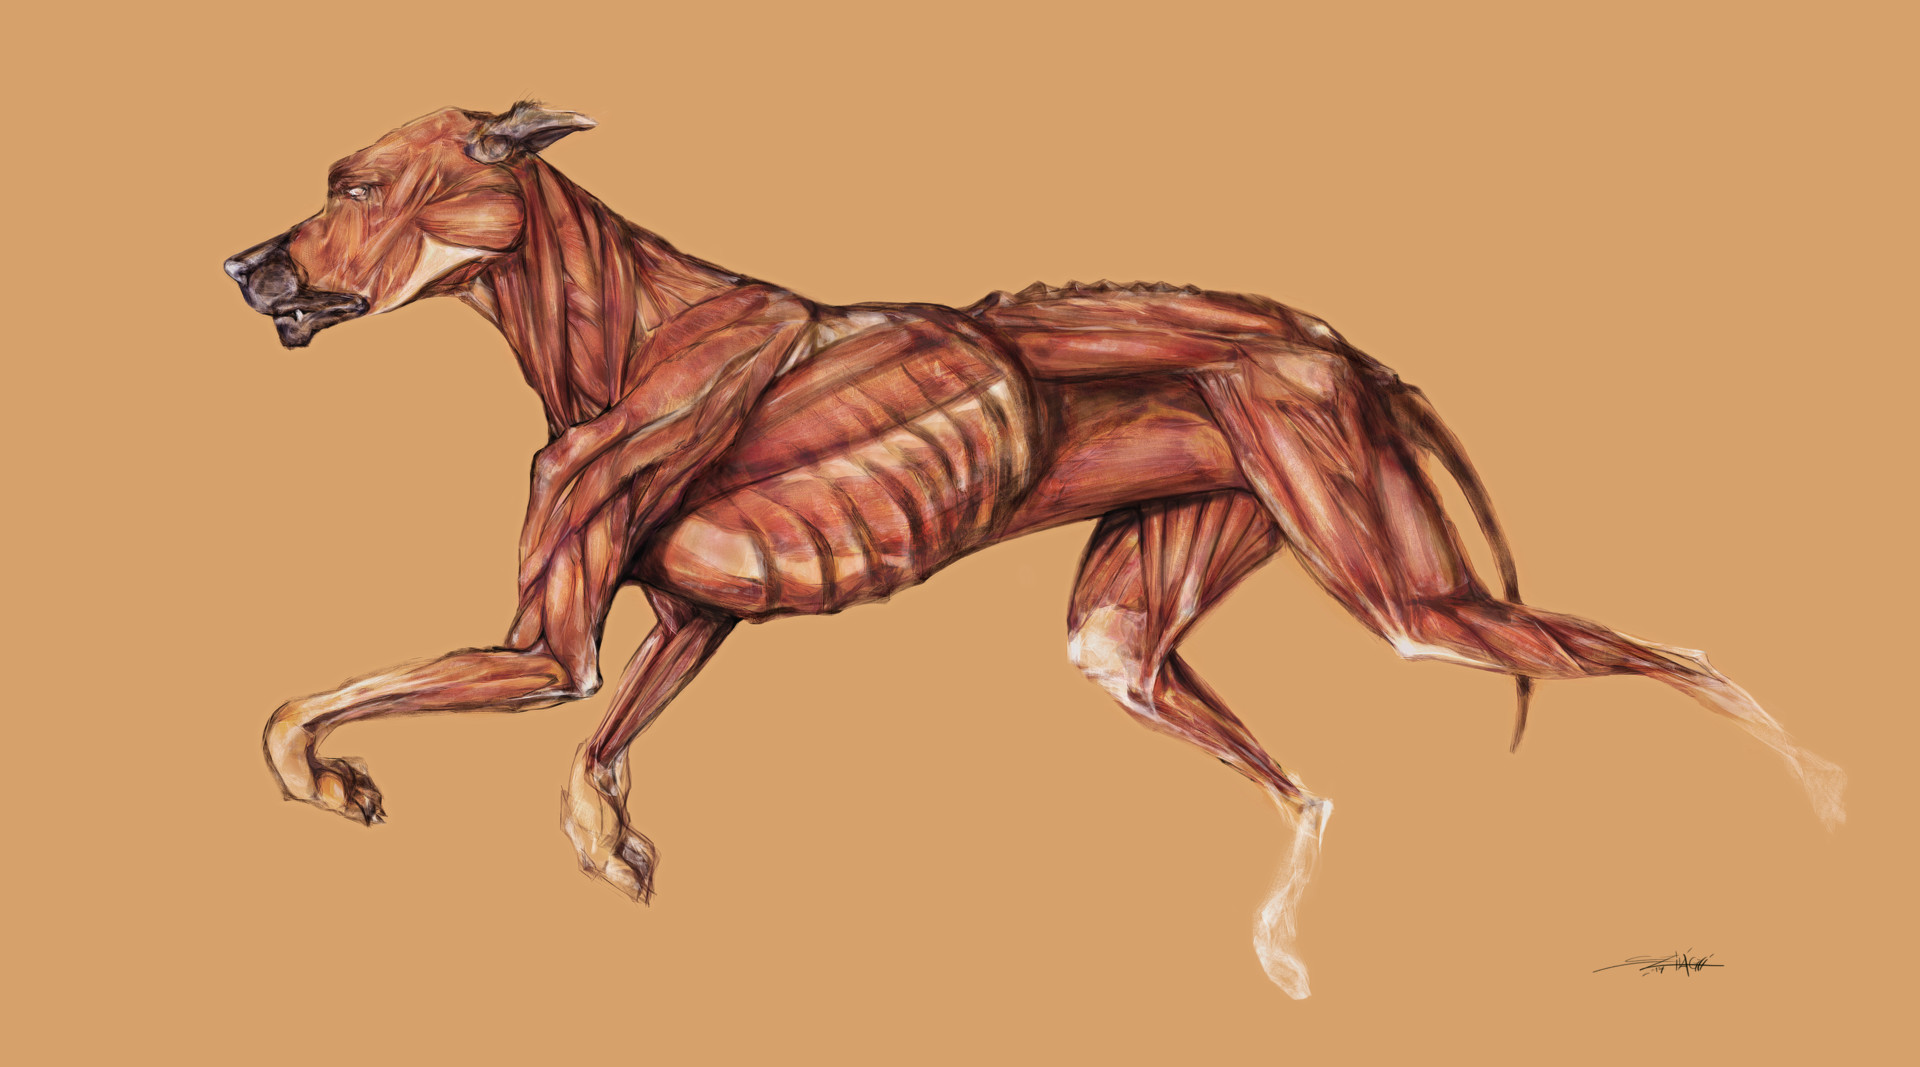 ArtStation - Dog Anatomy / Timelapse video anatomical drawing of a ...